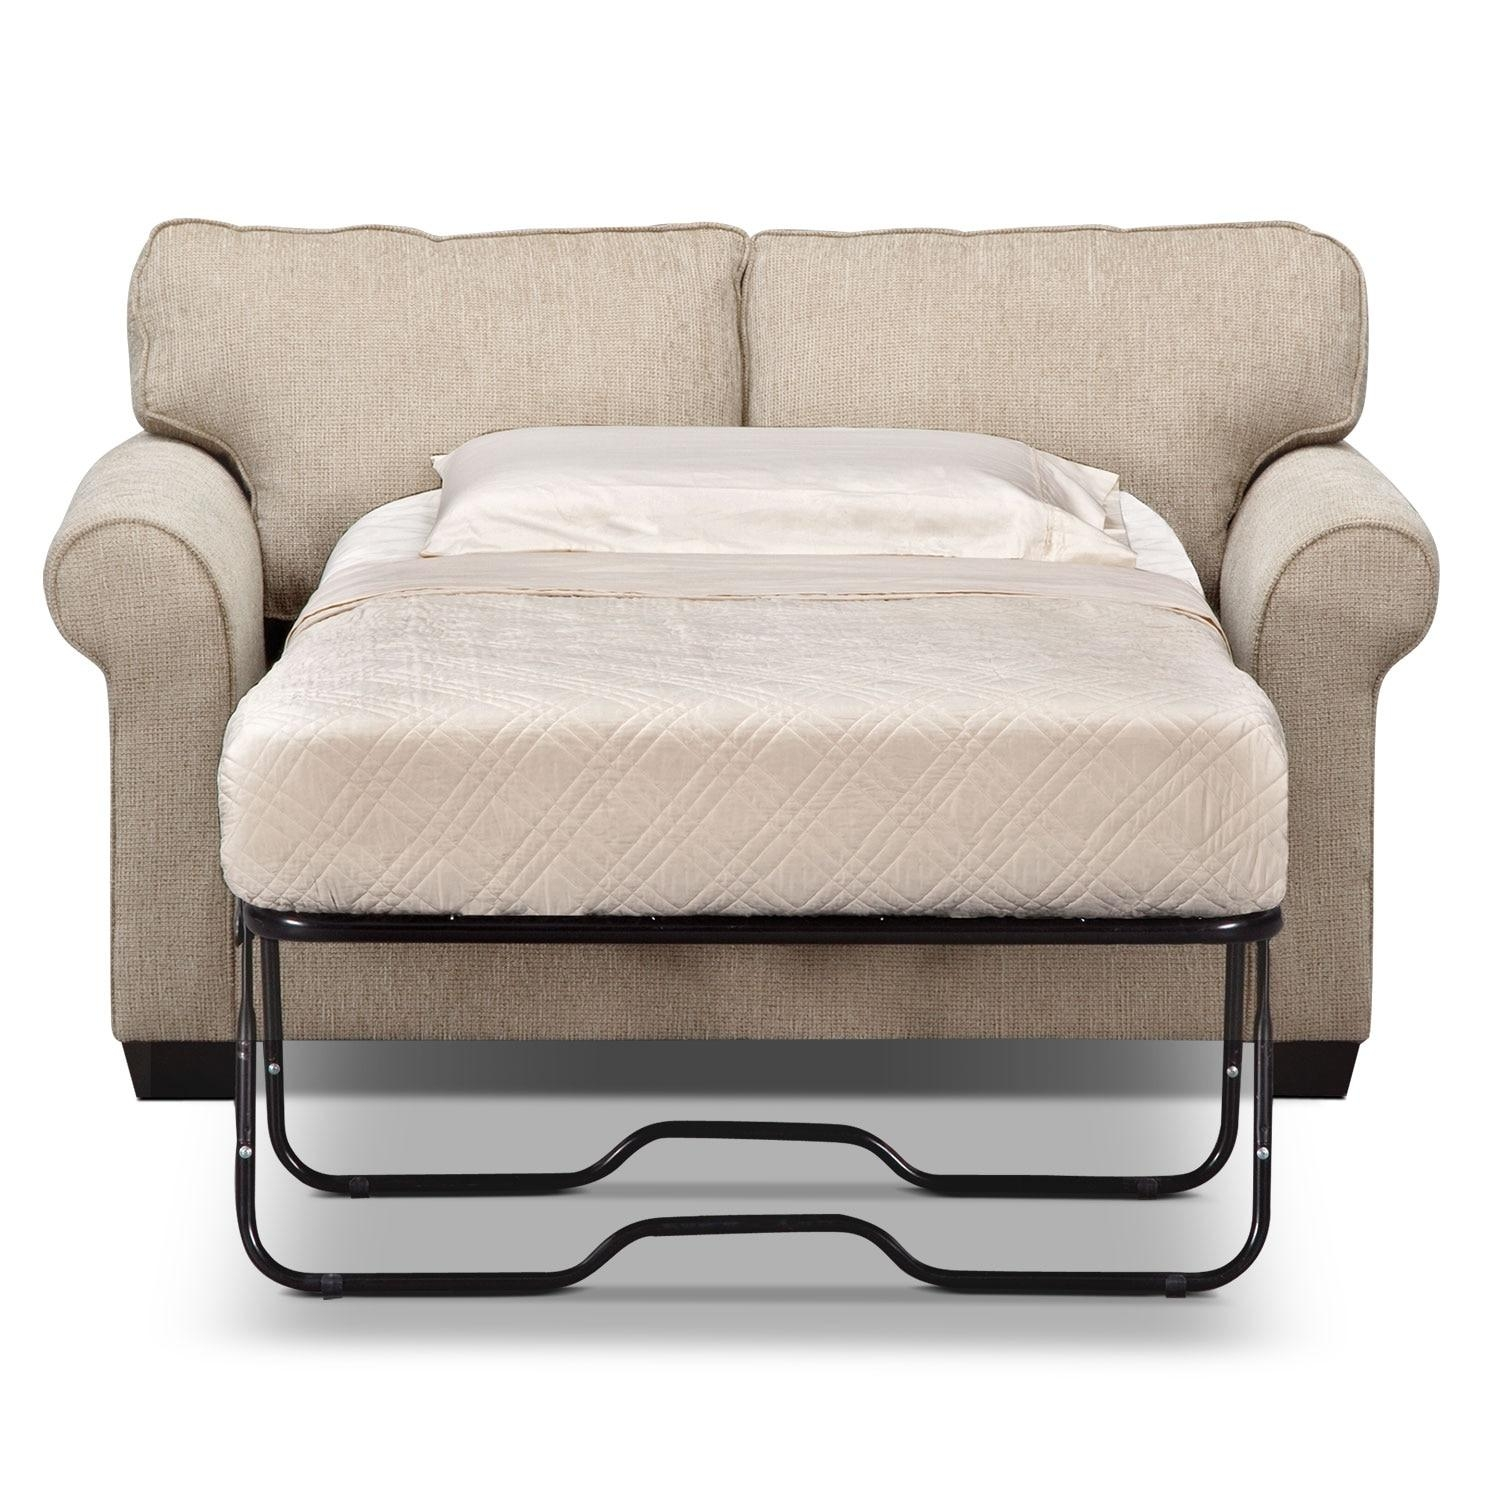 Fletcher Twin Memory Foam Sleeper Sofa – Beige | Value City Furniture With Twin Sleeper Sofa Chairs (Image 7 of 20)